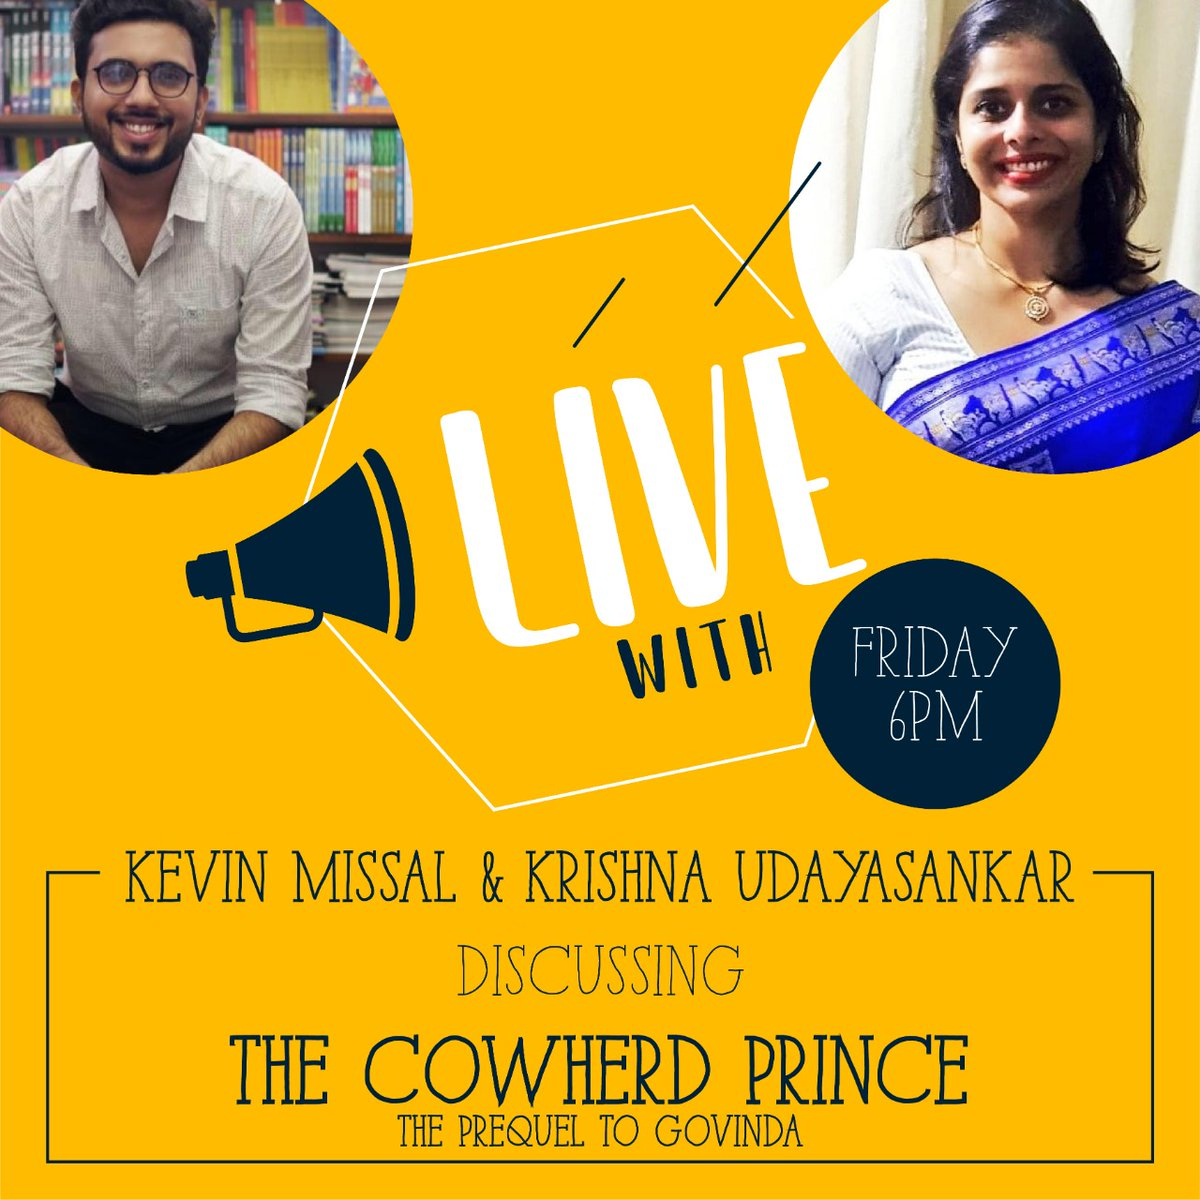 Tomorrow, live on @instagram with @kevin_missal   #TheCowherdPrince @PenguinIndia